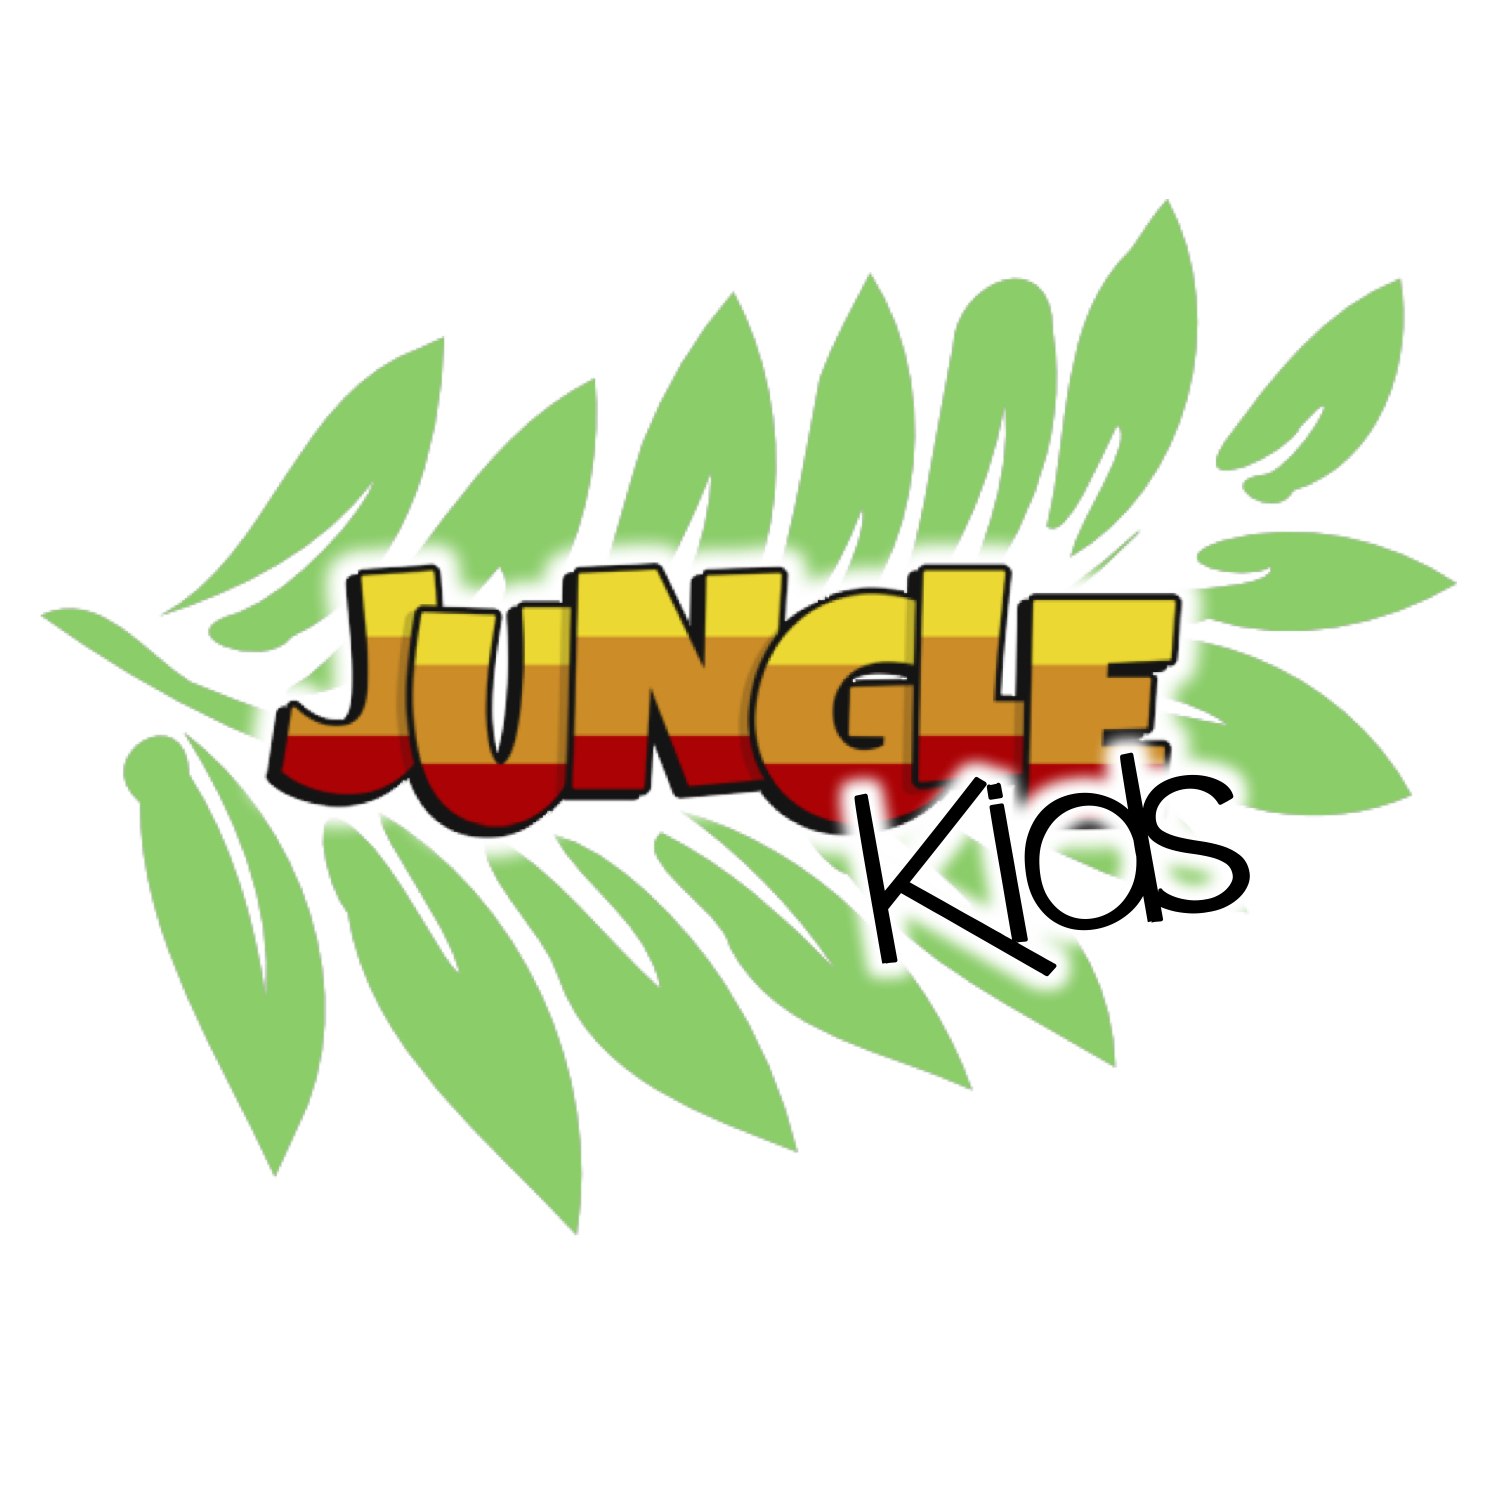 JUNGLE KIDS   (3 - 4 yrs.)Our youngest congregation learns about our world through fun Bible lessons and interactive songs. The Bible comes to life each week through memorable characters and fun activities!